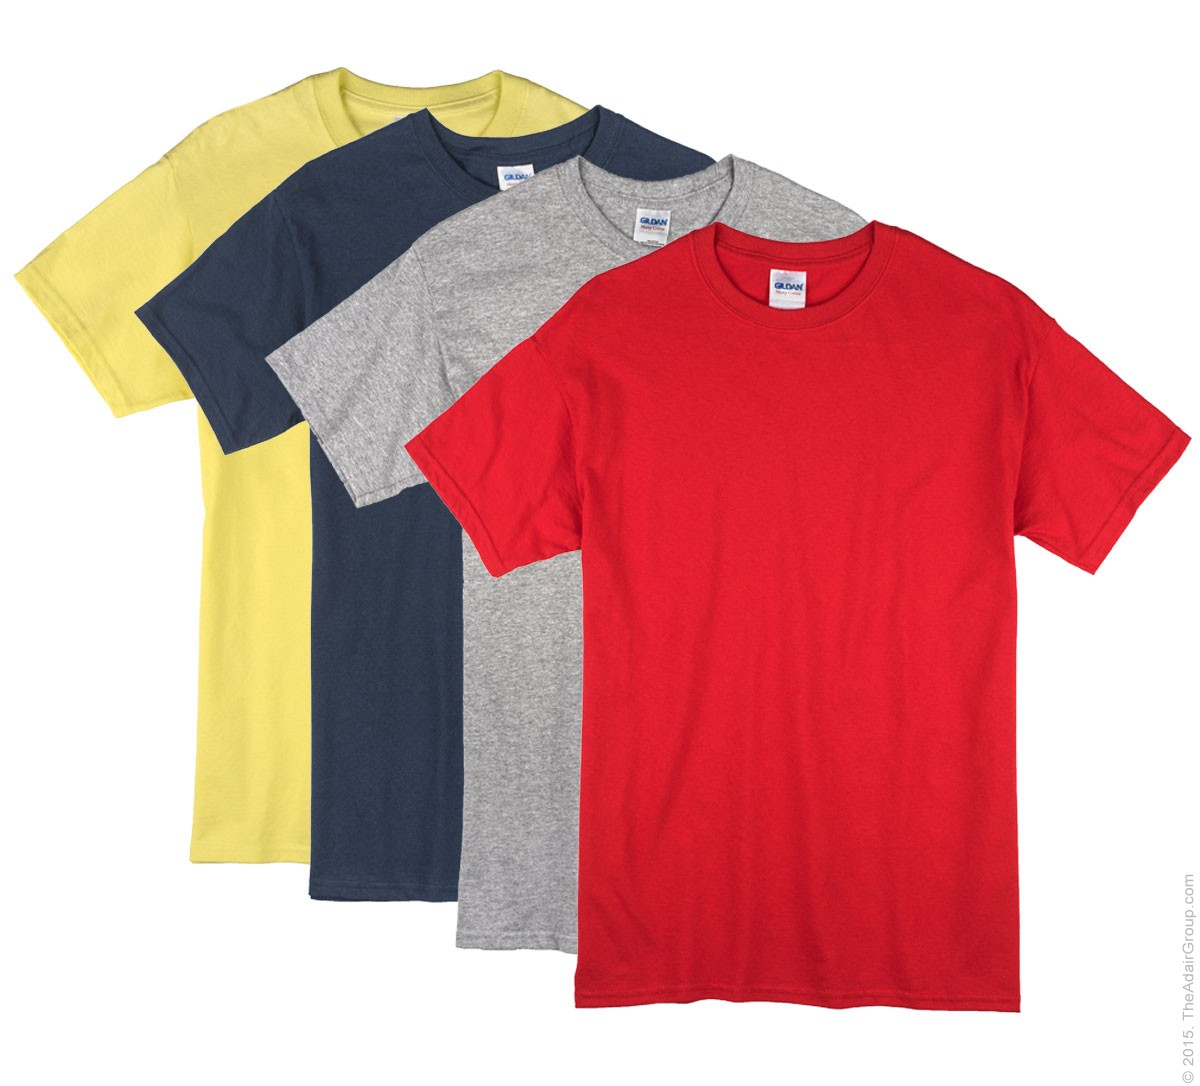 462e6125 Completely new 1 Wholesale Colored T Shirts from Adair Group QF19